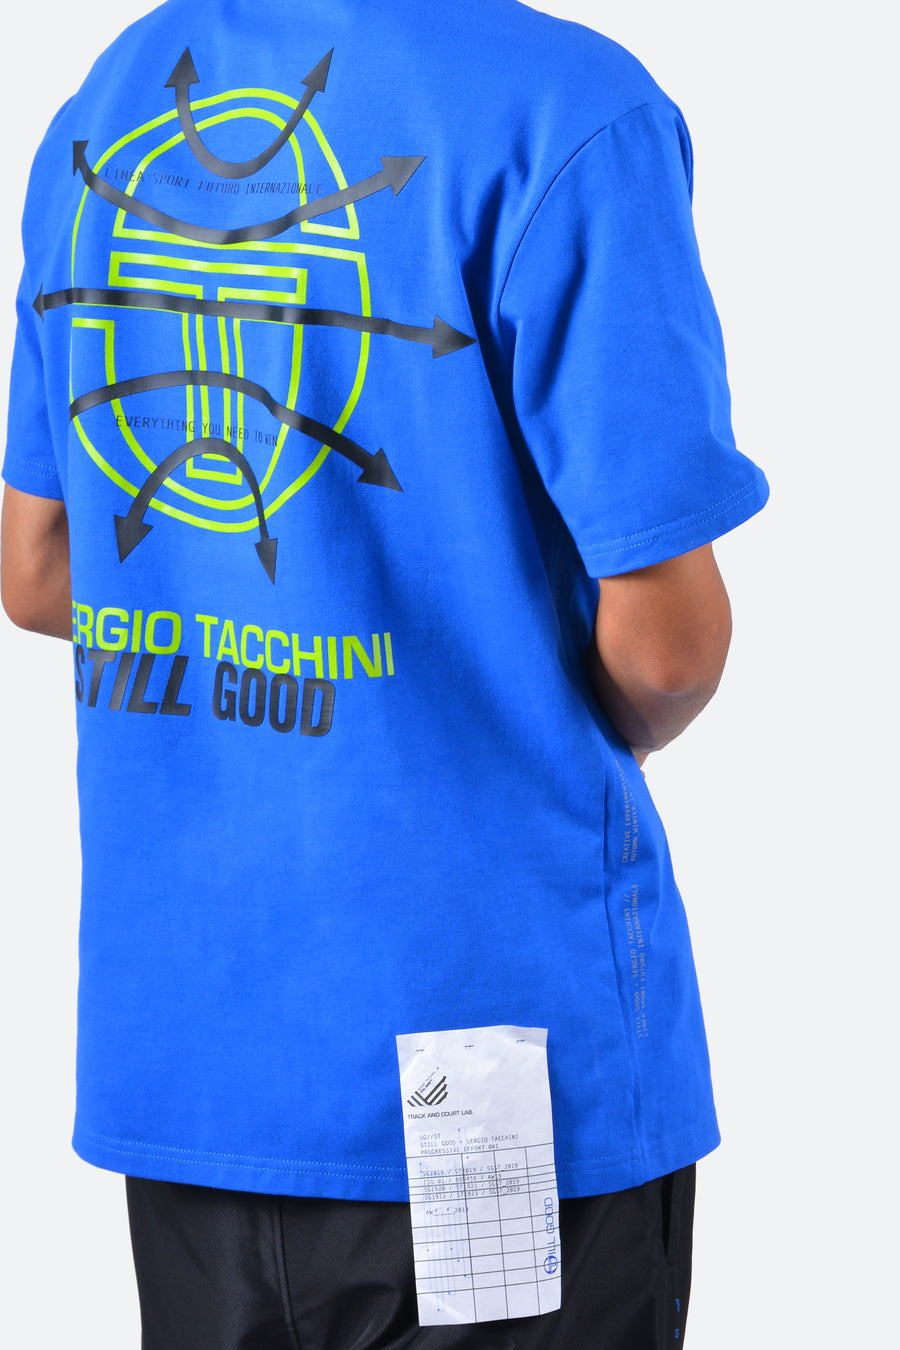 Still Good x Sergio Tacchini Global Tee #Royal Blue